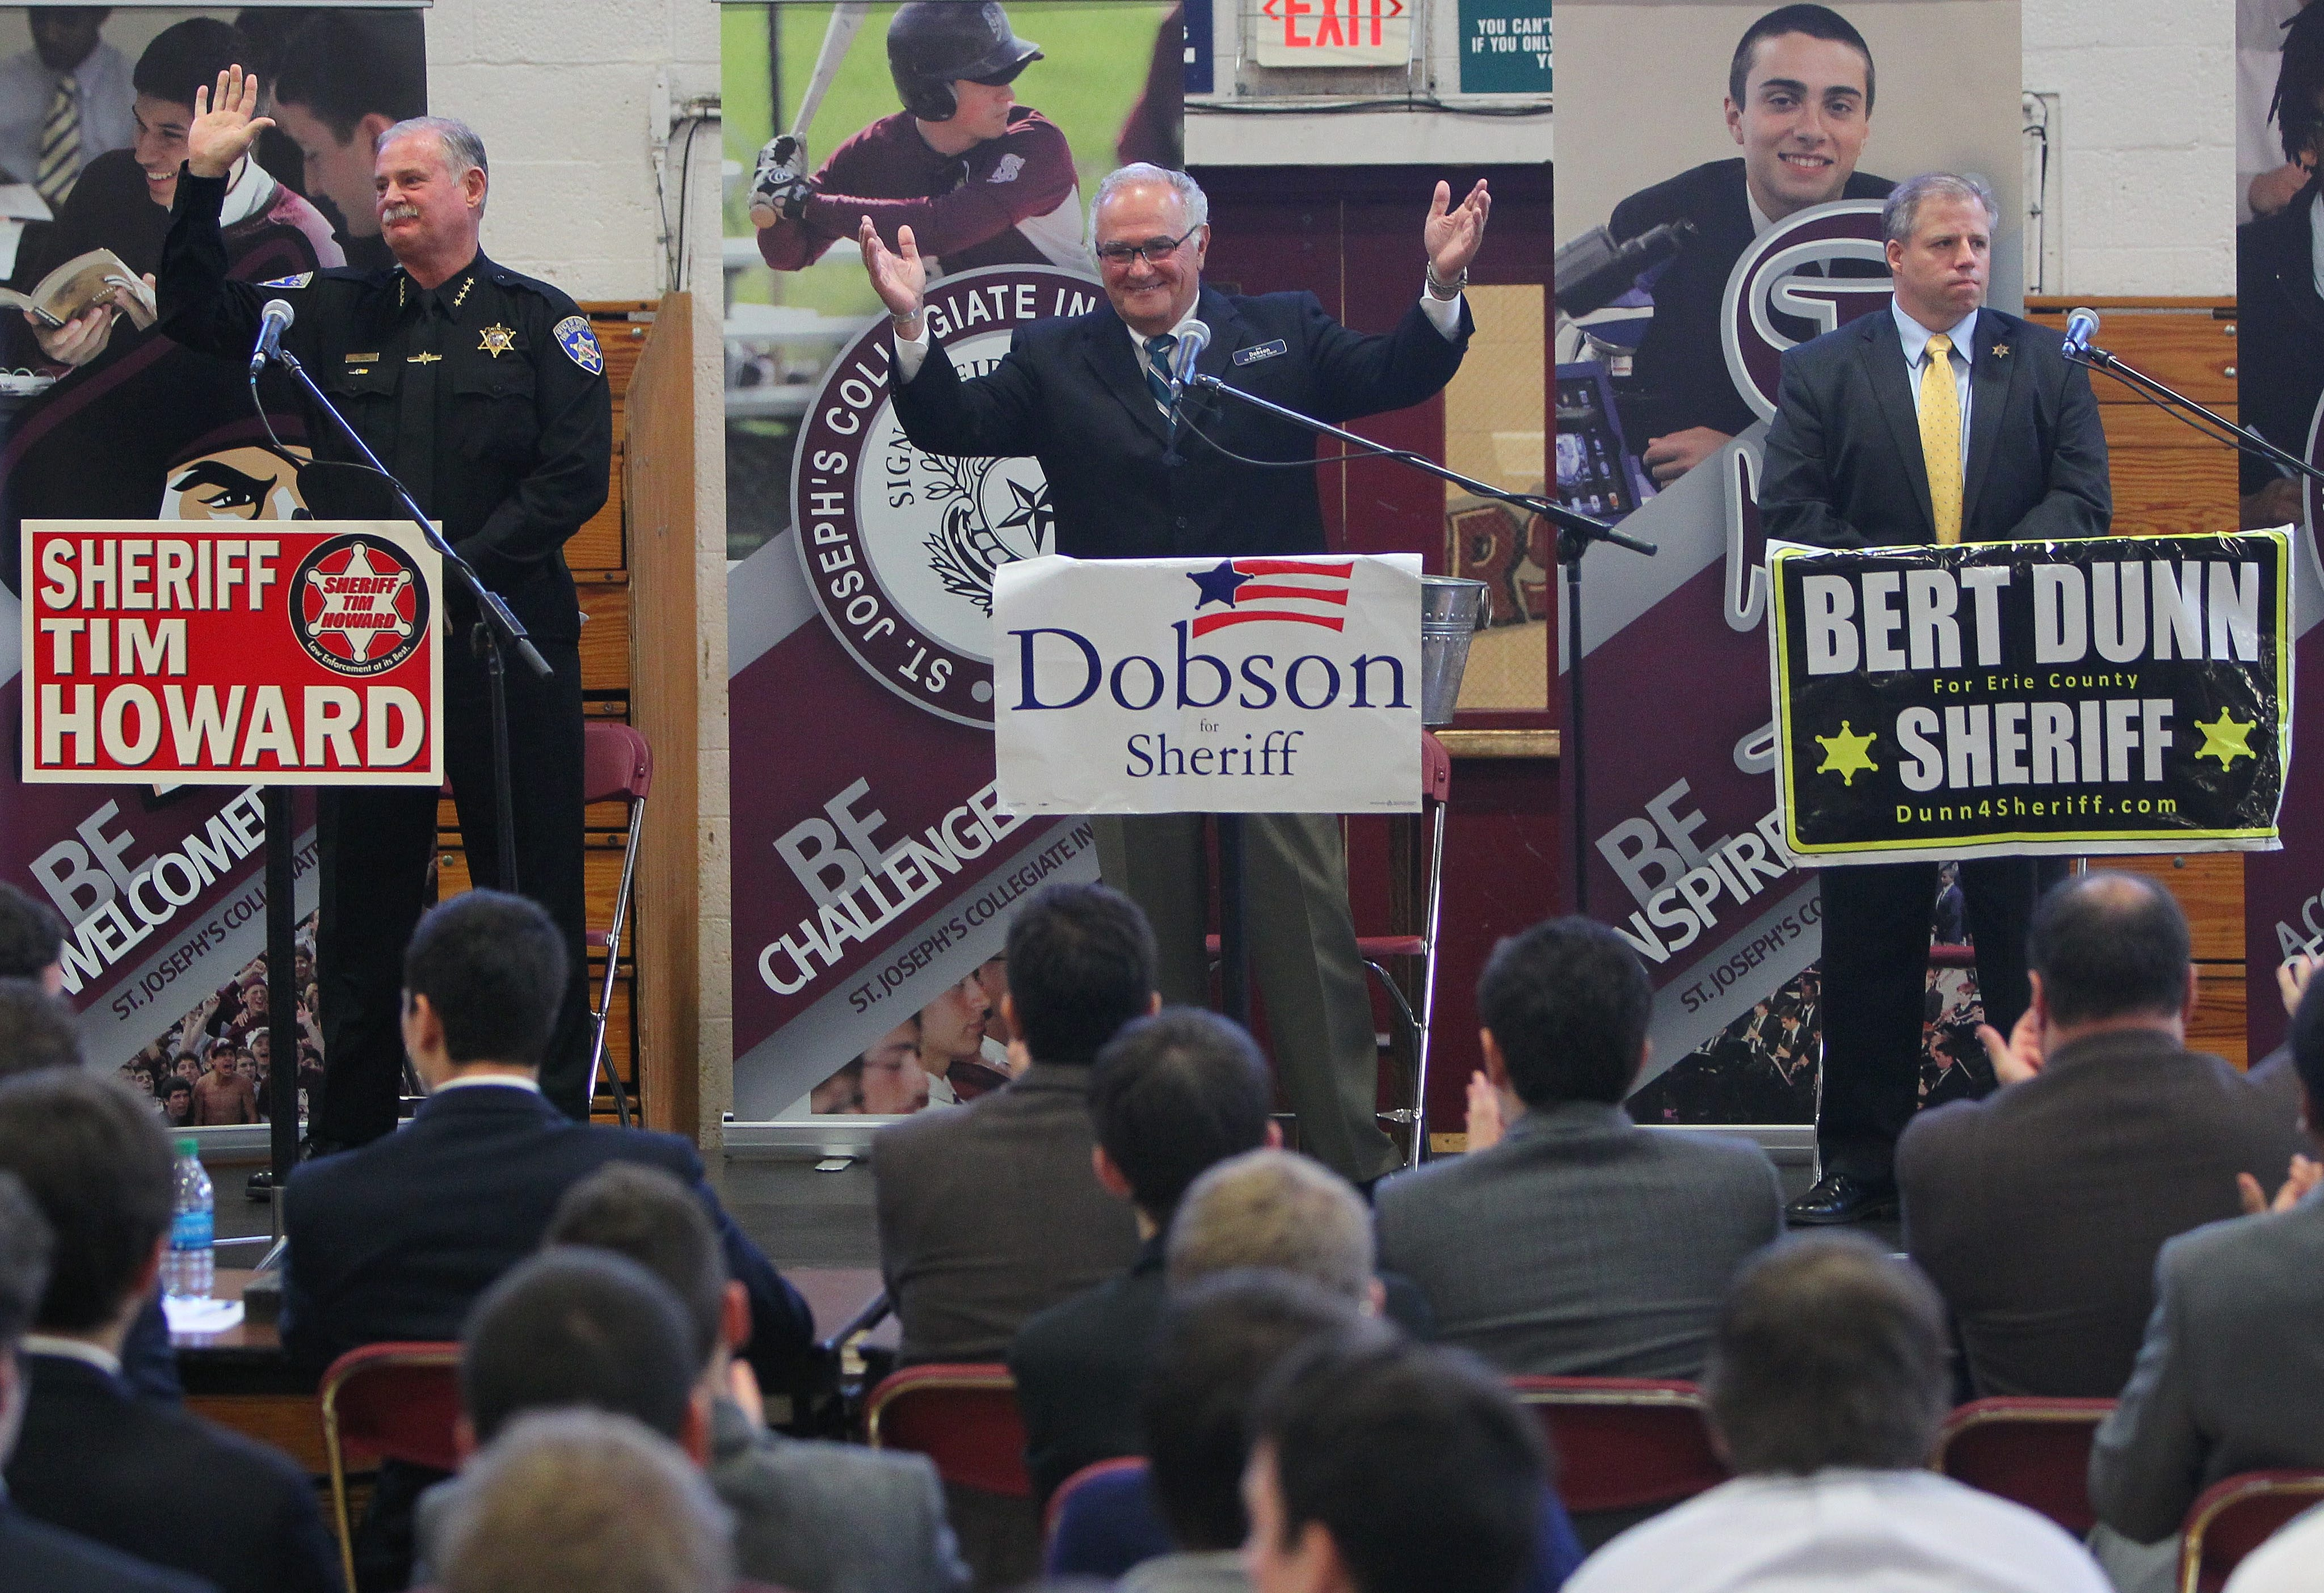 Erie County Sheriff Timothy Howard, left, and challengers Richard Dobson, center, and Bert Dunn appear at a debate Tuesday at St. Joseph's Collegiate Institute.